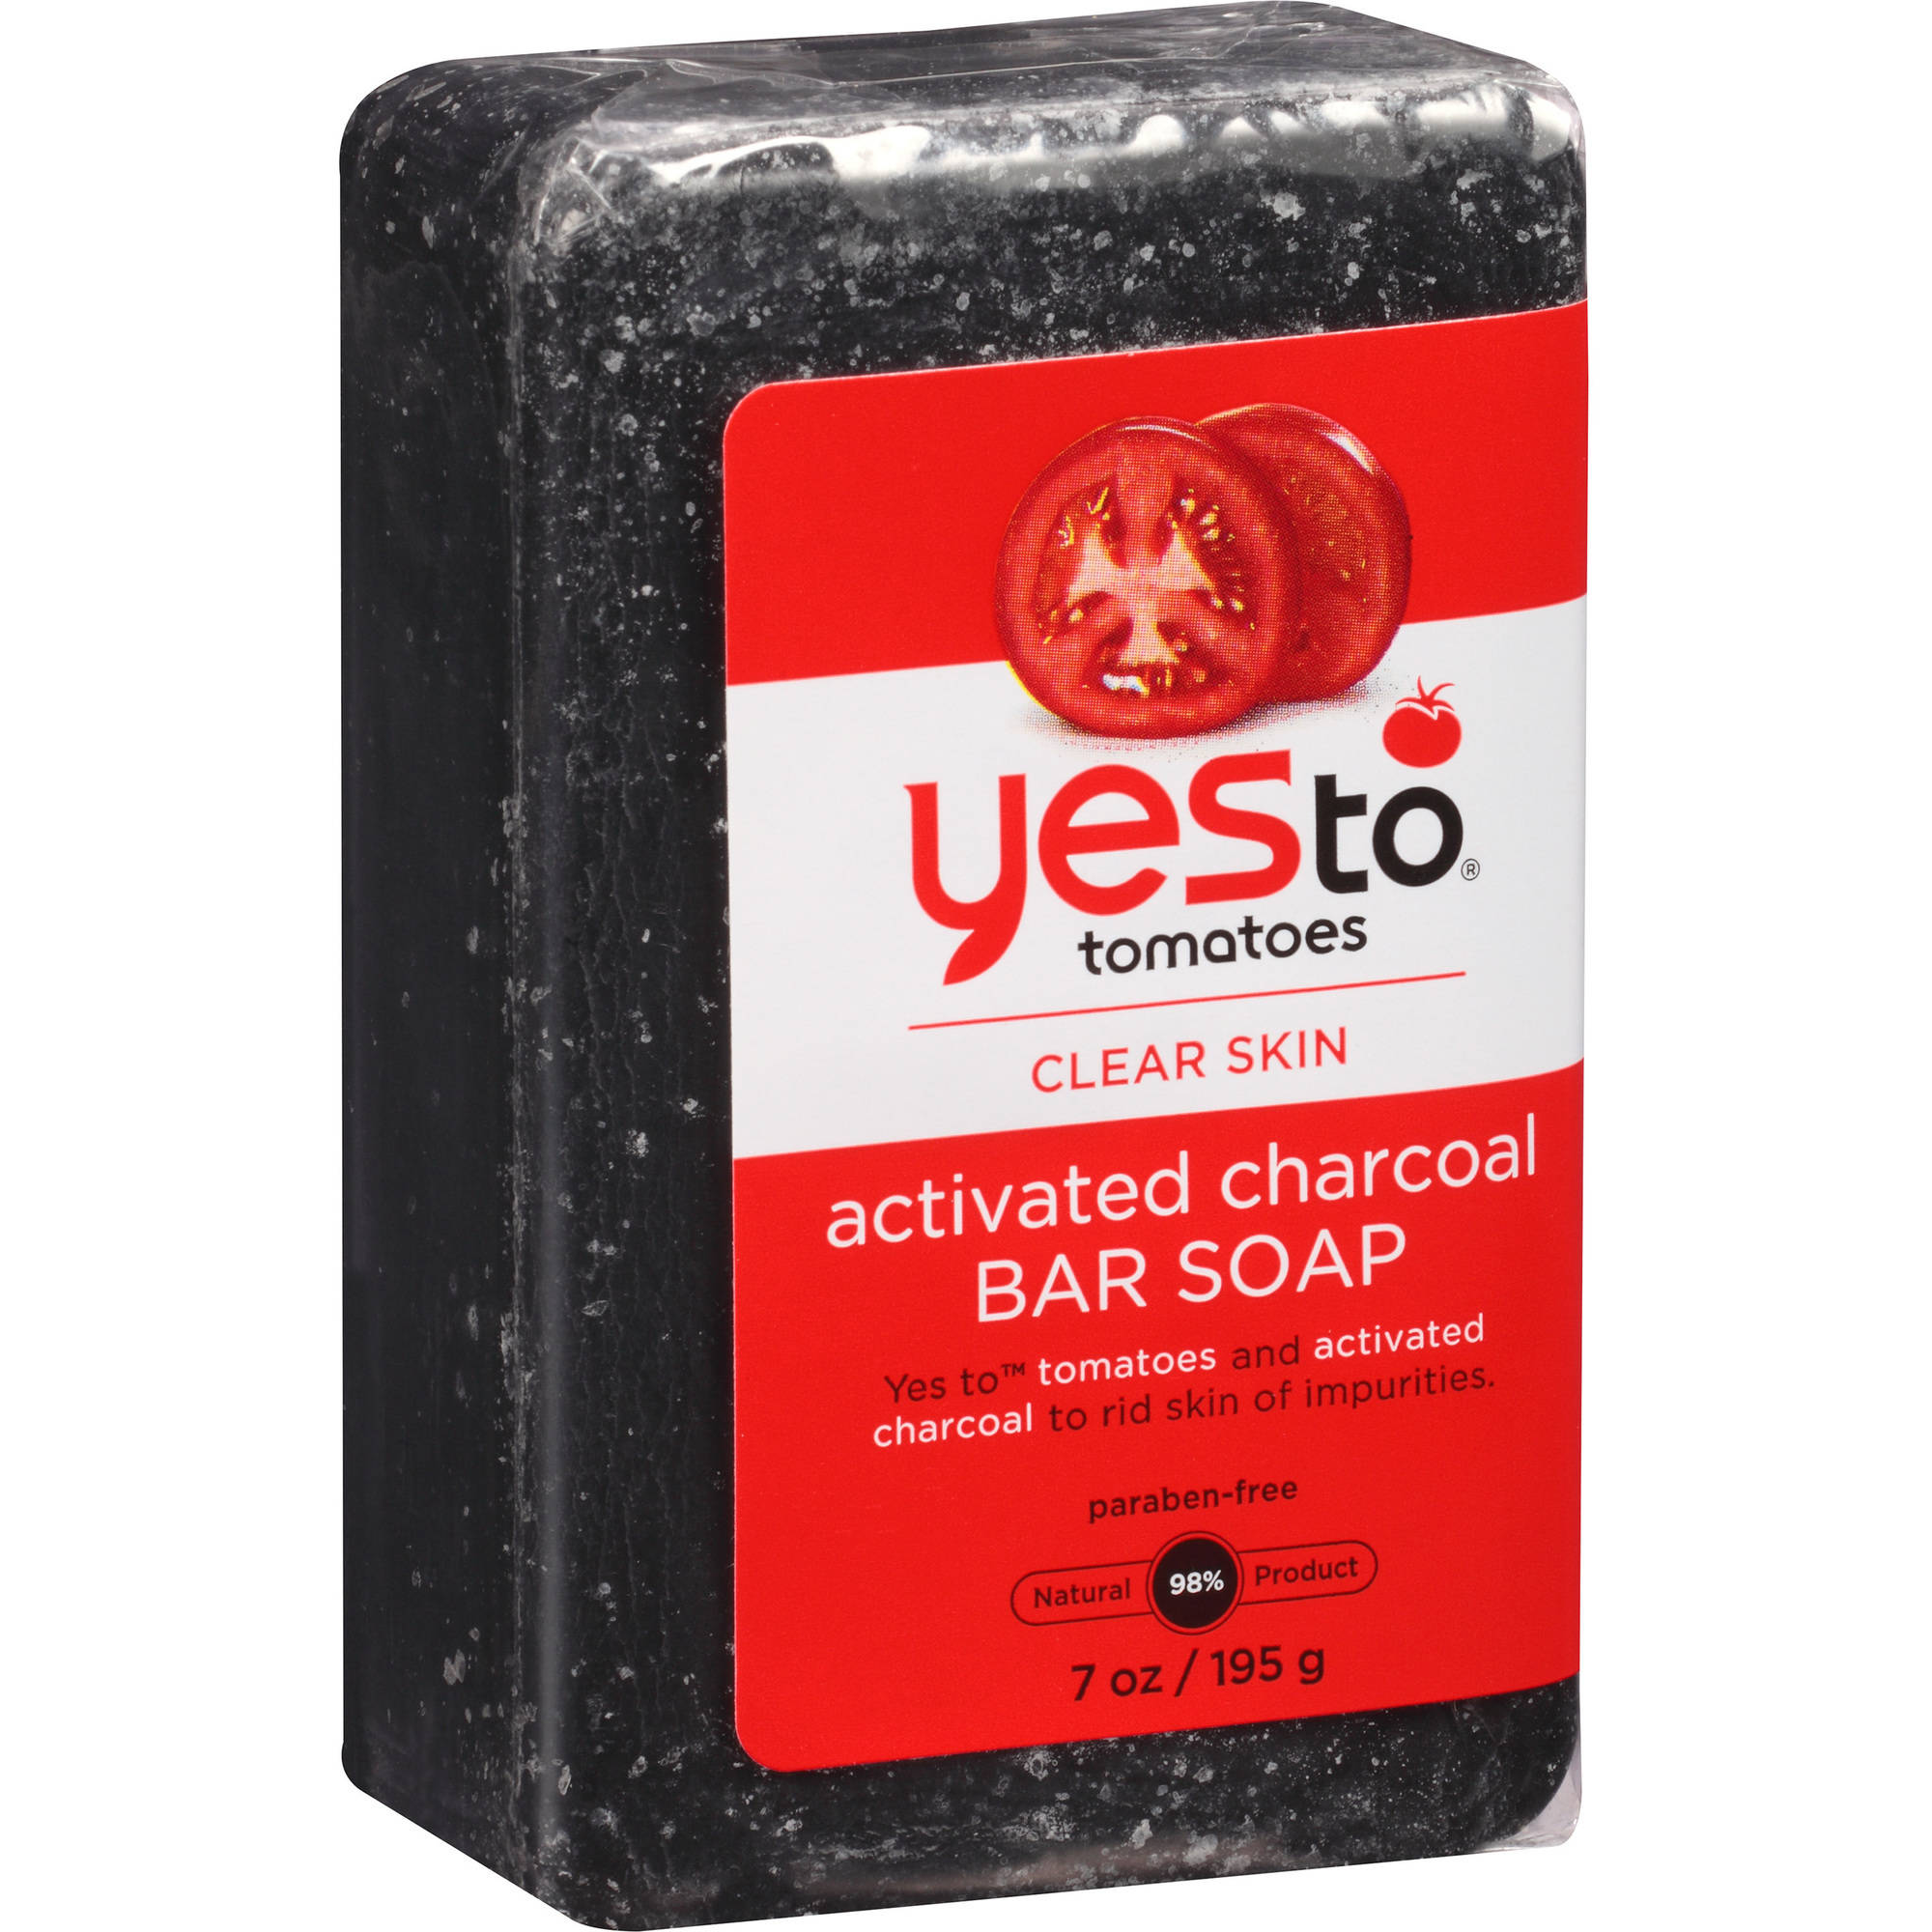 Yes To Tomatoes Clear Skin Activated Charcoal Bar Soap, 7 oz